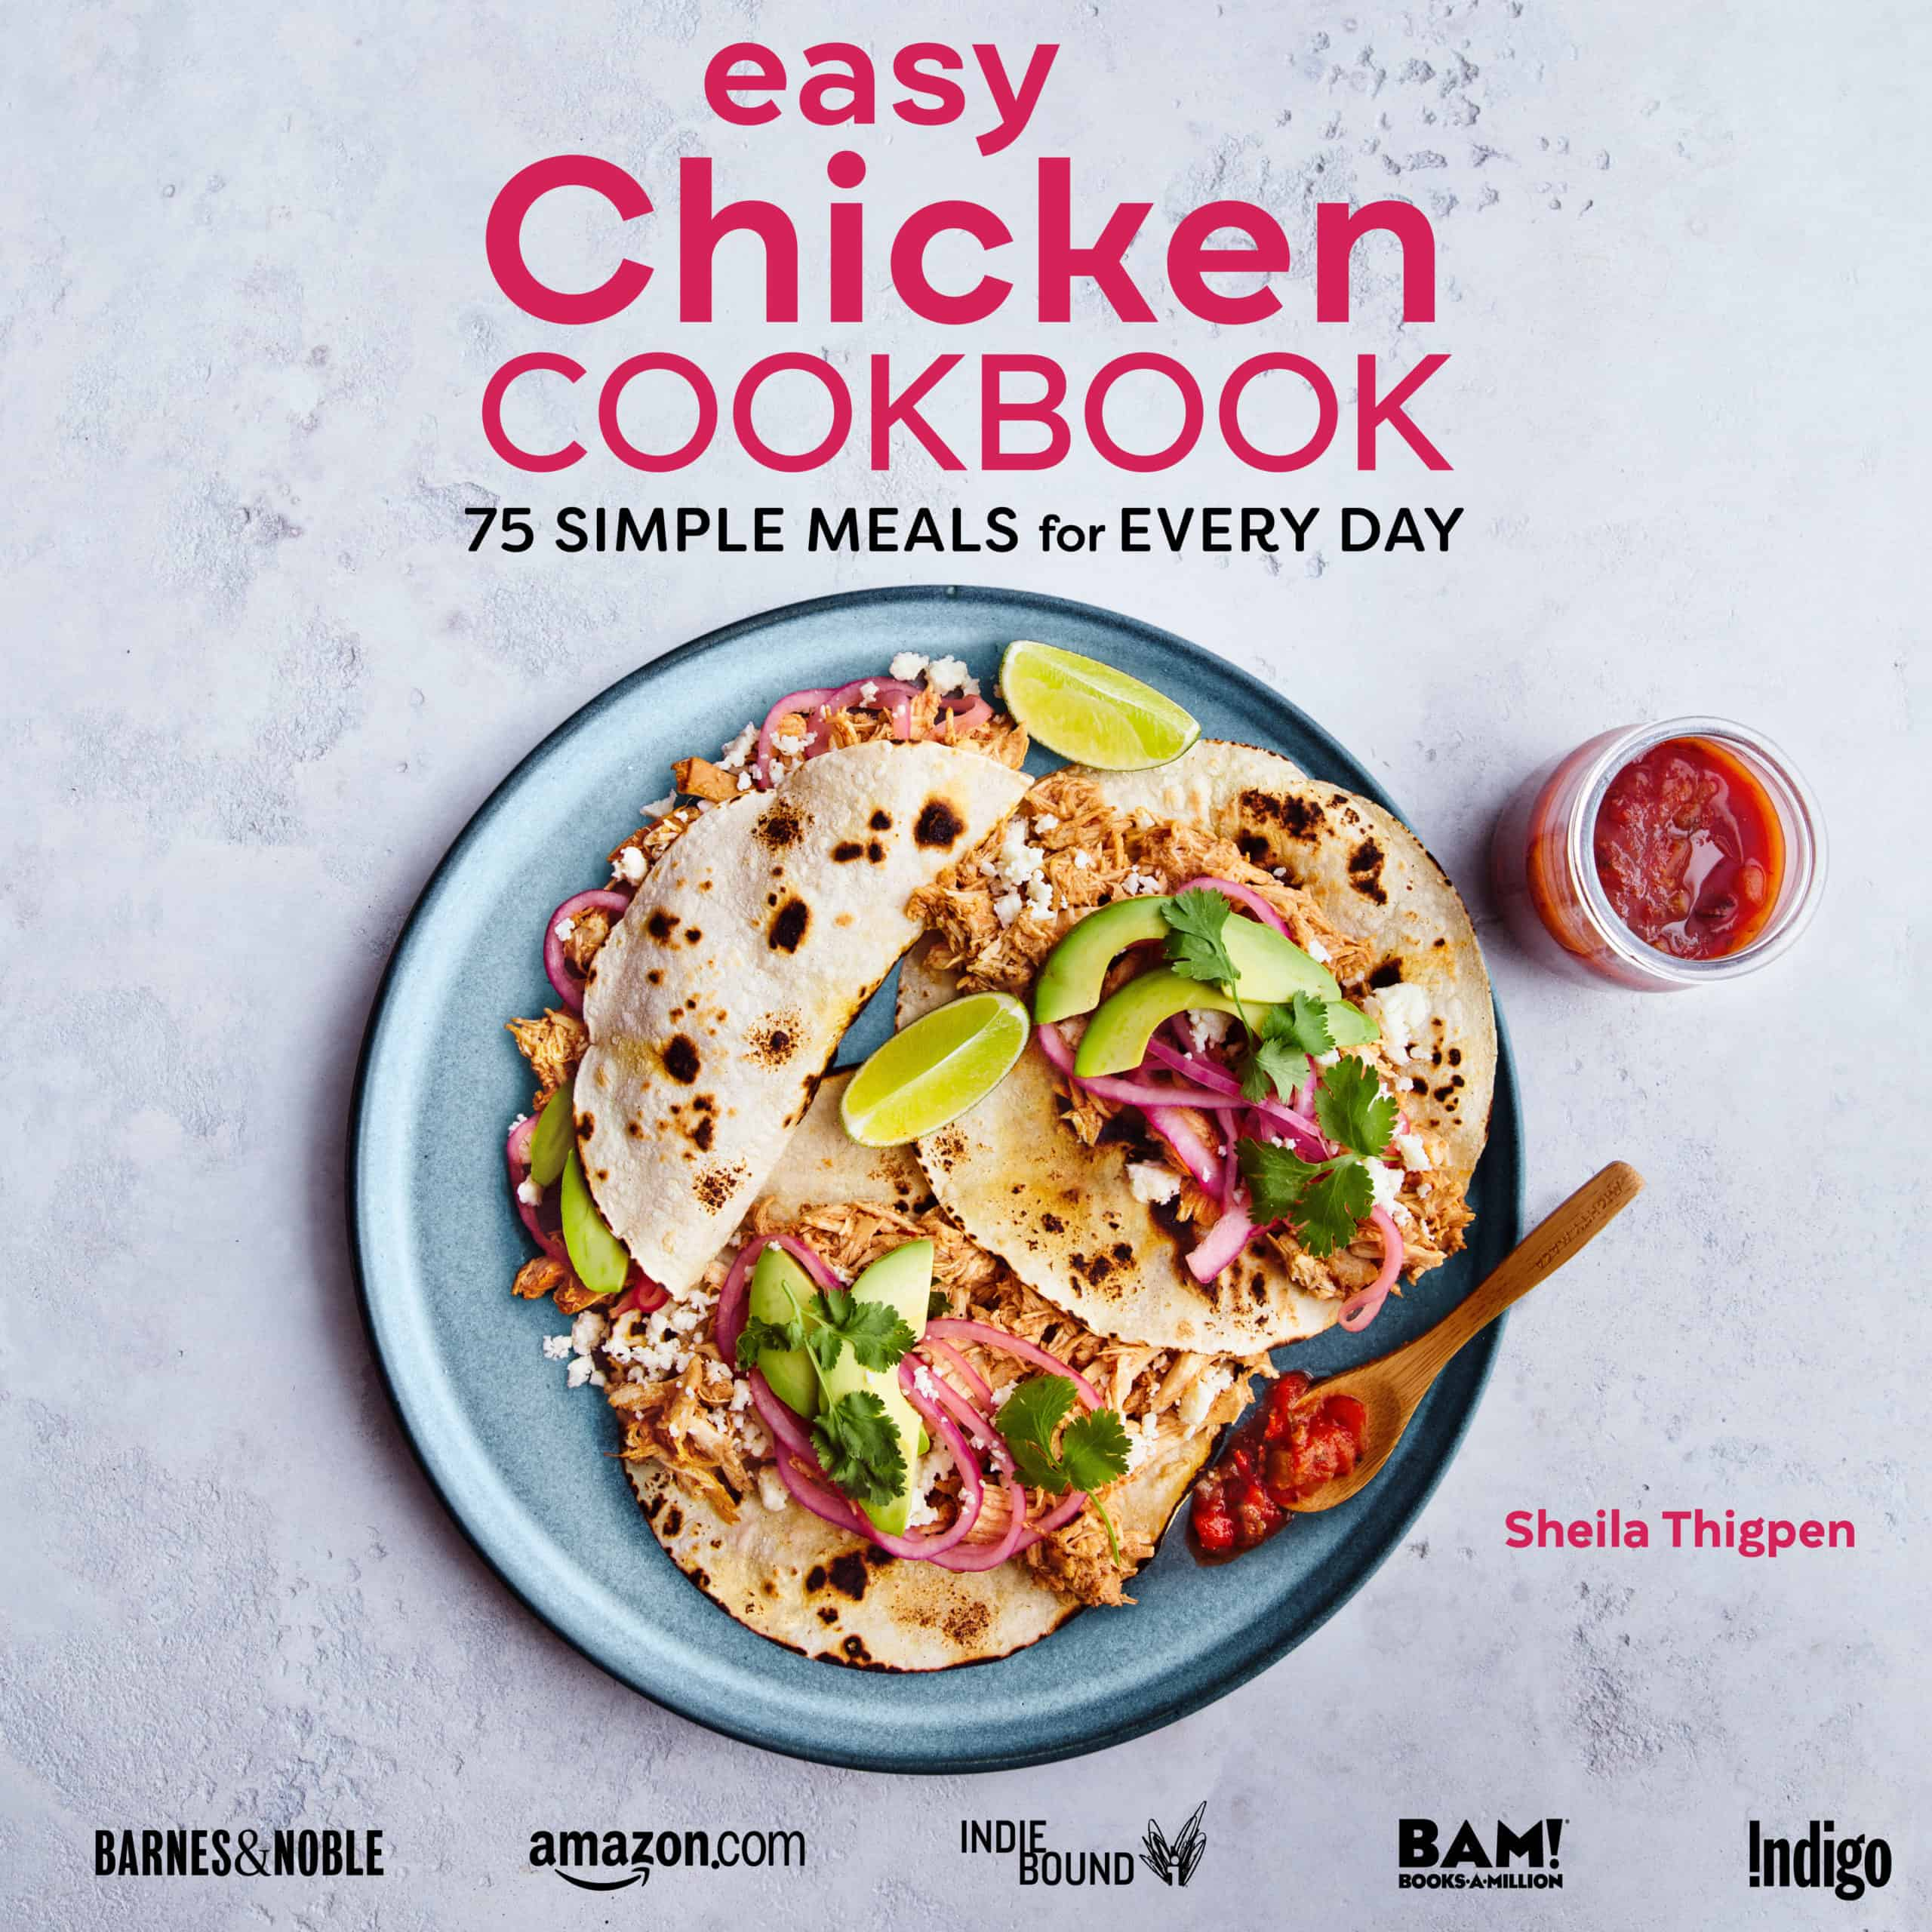 cover image for the Easy Chicken Cookbook